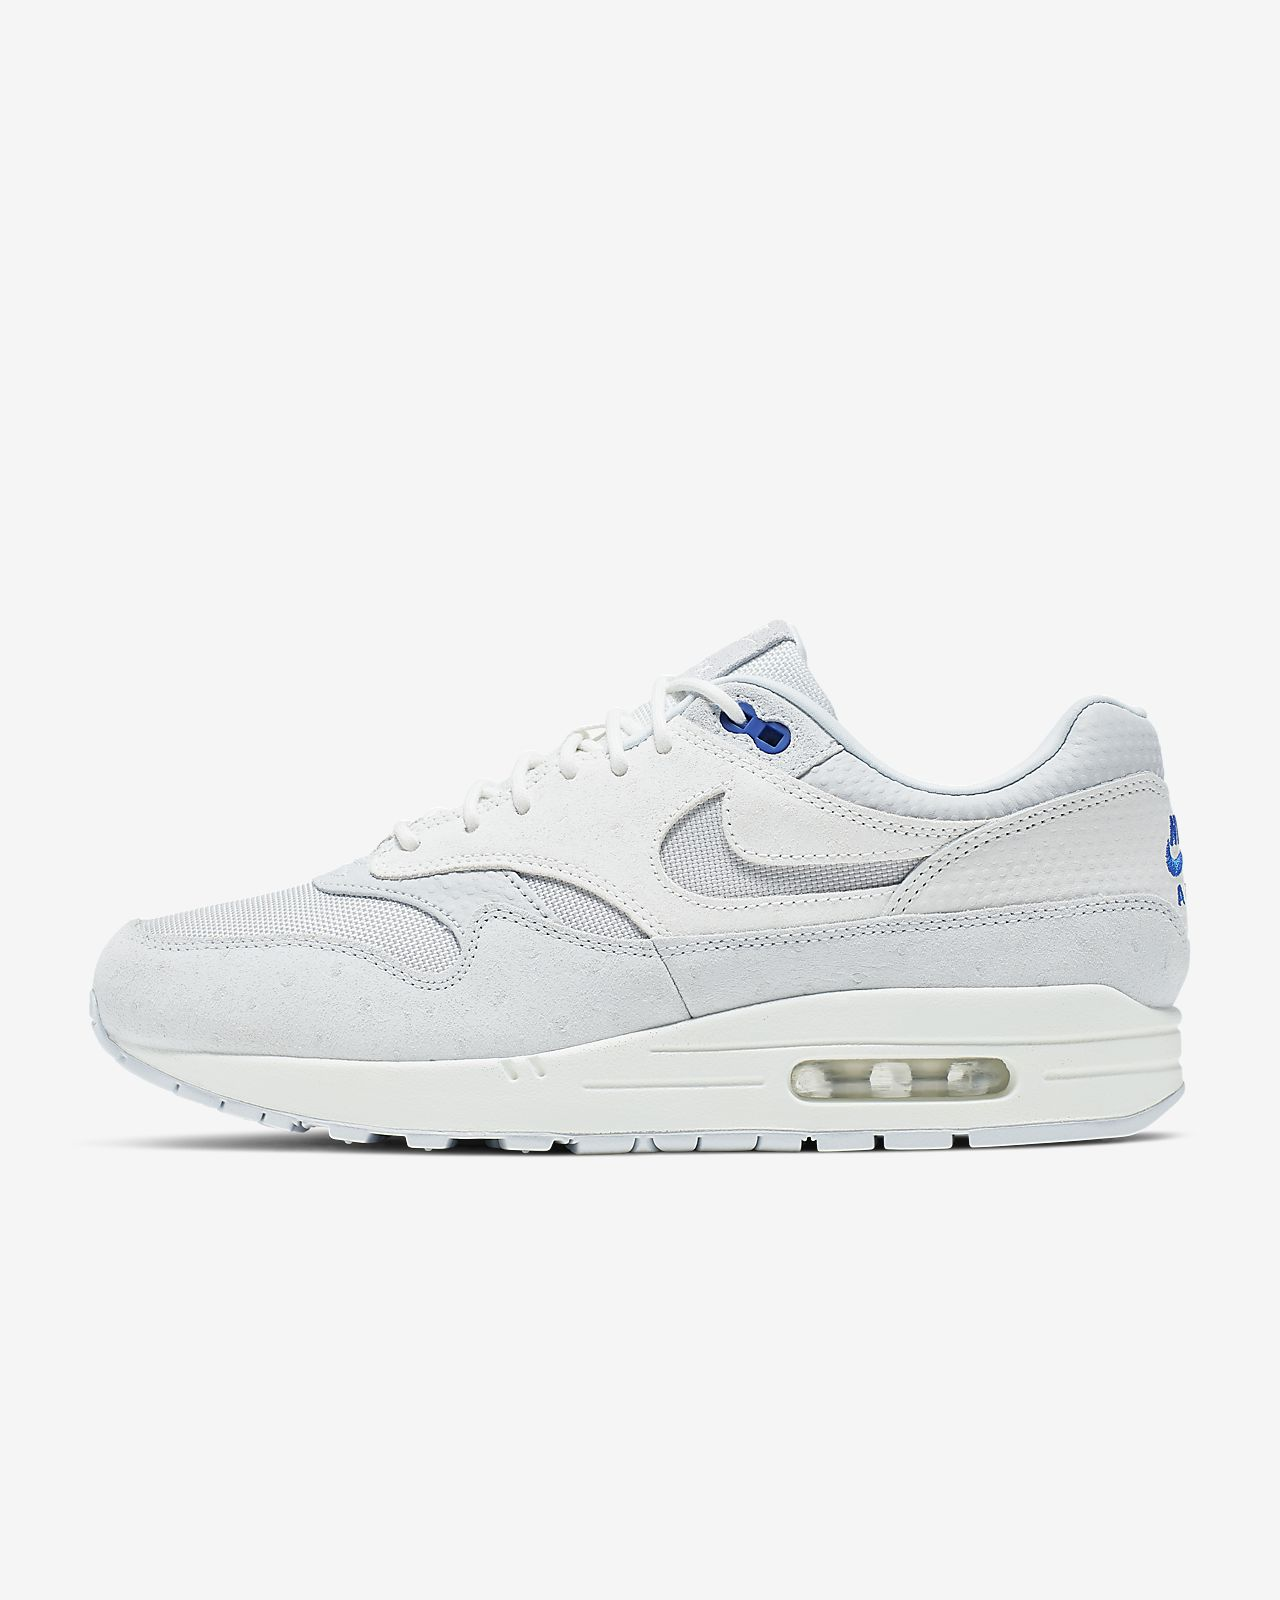 official photos 29185 4f3fd Nike Air Max 1 Premium Men's Shoe. Nike.com